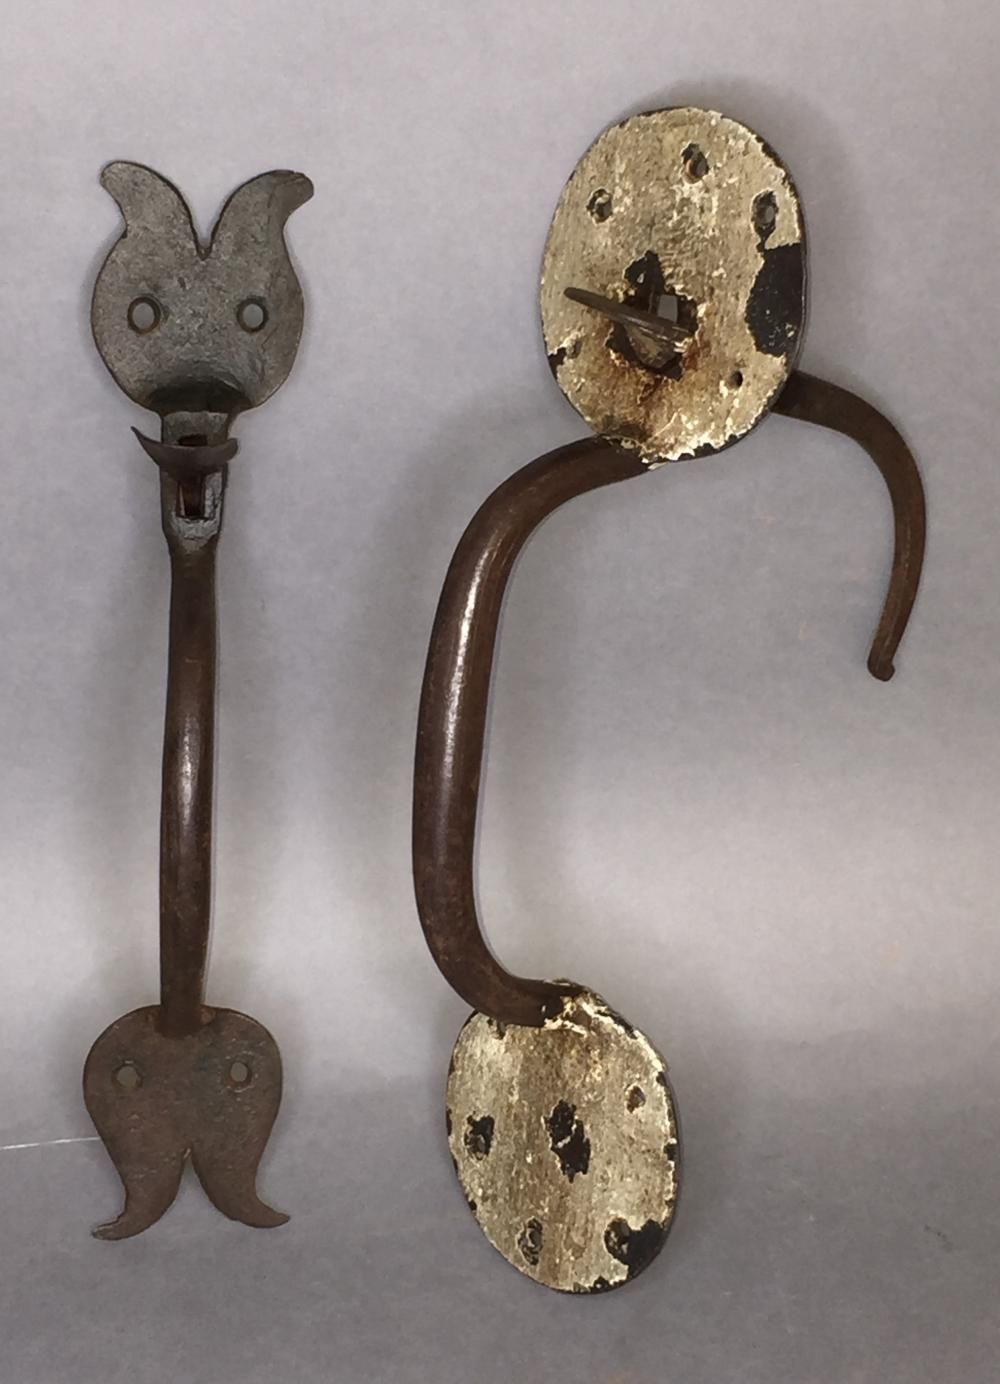 2 large hand wrought thumb latches